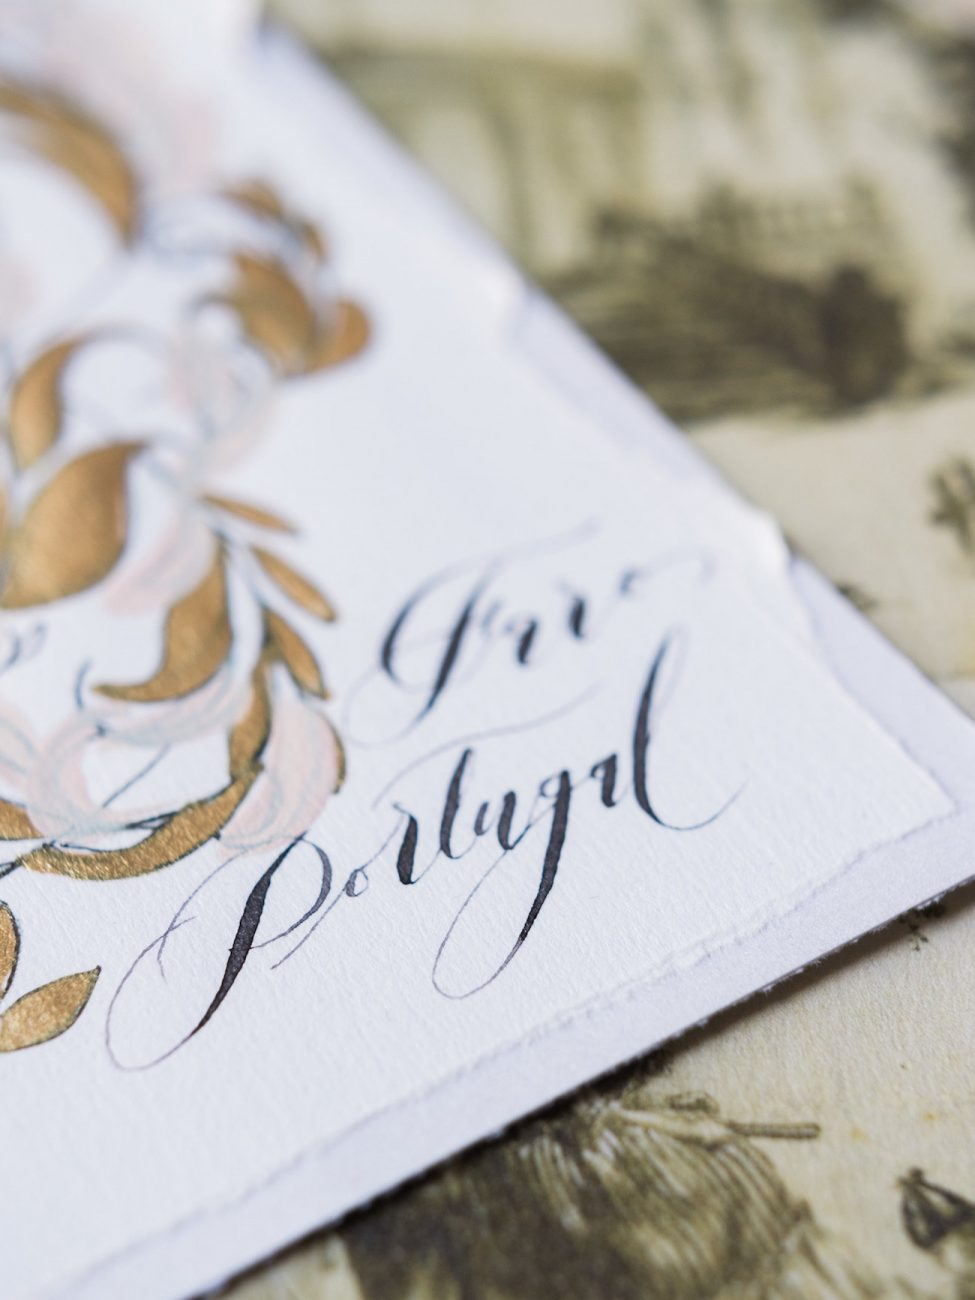 Palace Wedding Inspiration - save the date card detail